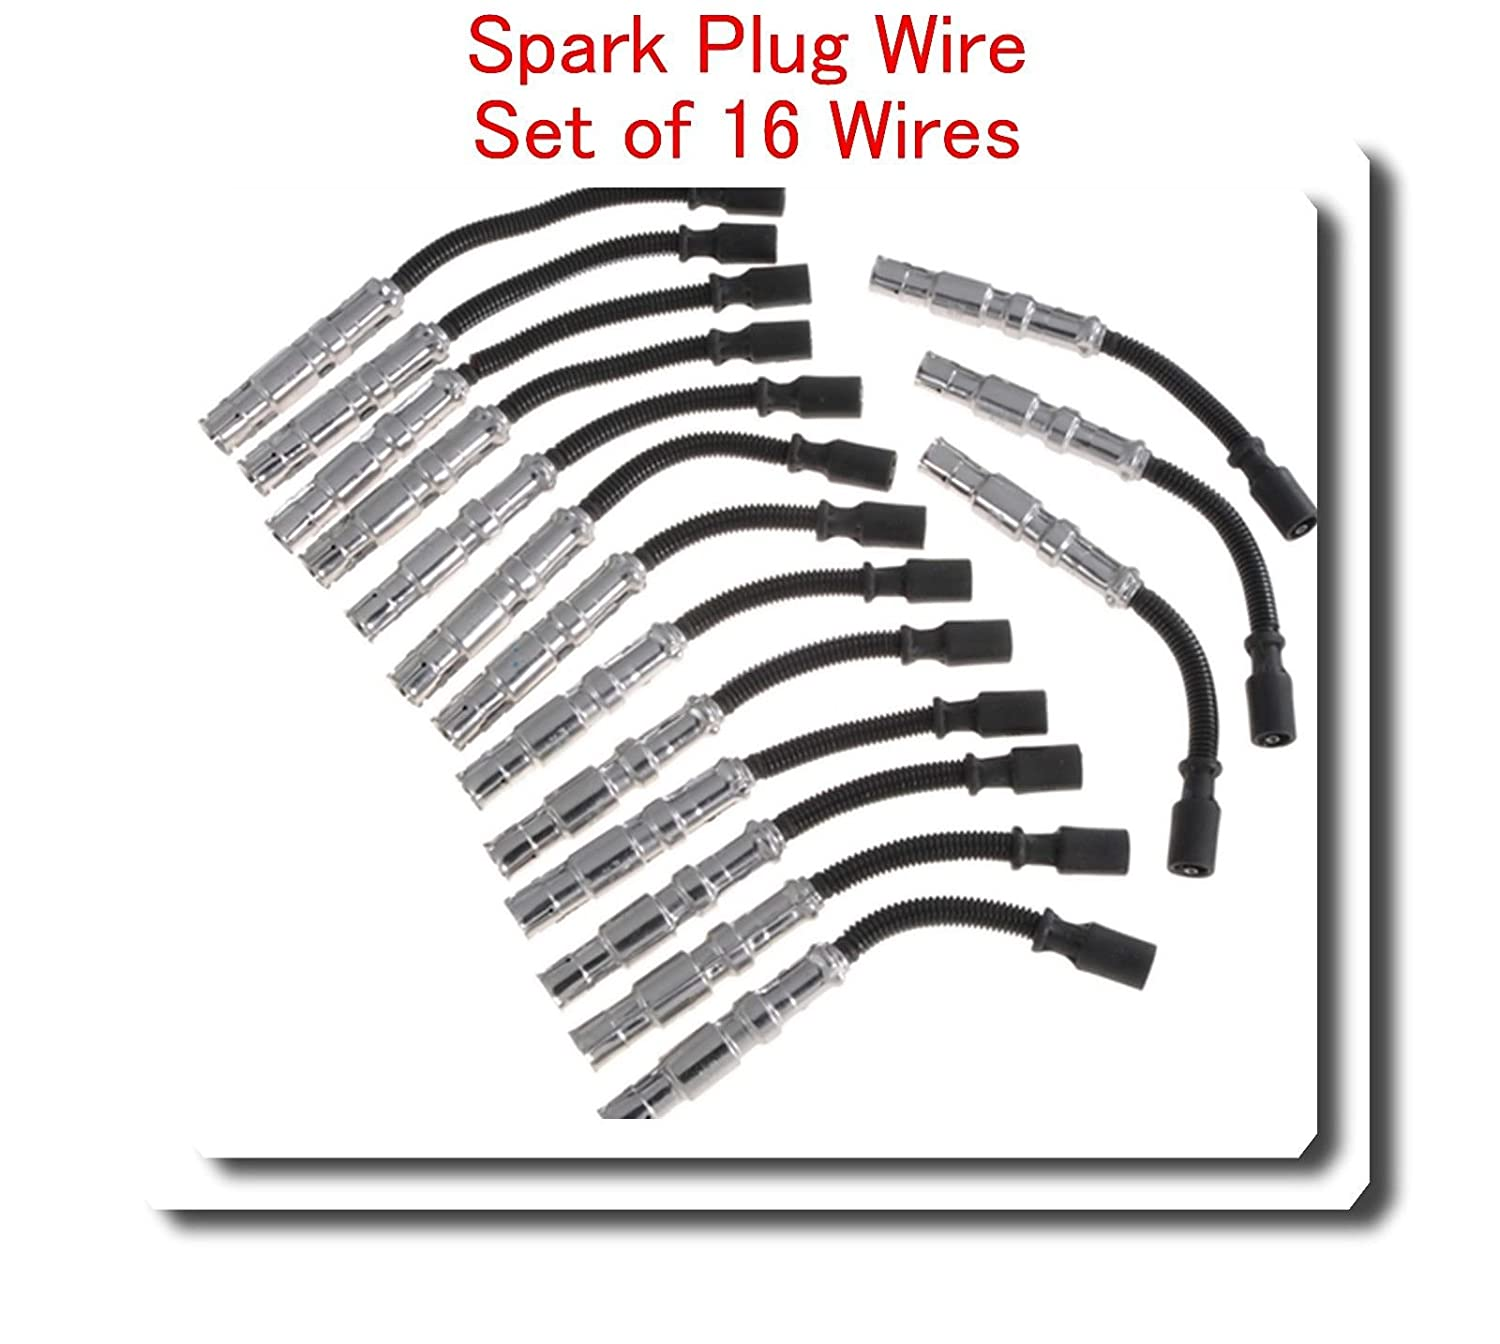 Amazon 1121500418 Spark Plug Wire Set 16 Wires For Mercedes. Amazon 1121500418 Spark Plug Wire Set 16 Wires For Mercedes Benz V8 Amg C43 C55 Cl55 Clk55 Cls55 E55 G55 Ml55 S55 Slk55 Sl55 Clk430 500 Cl S500 E Ml. Mercedes Benz. Mercedes Benz 2000 Sl500 Wiring At Scoala.co